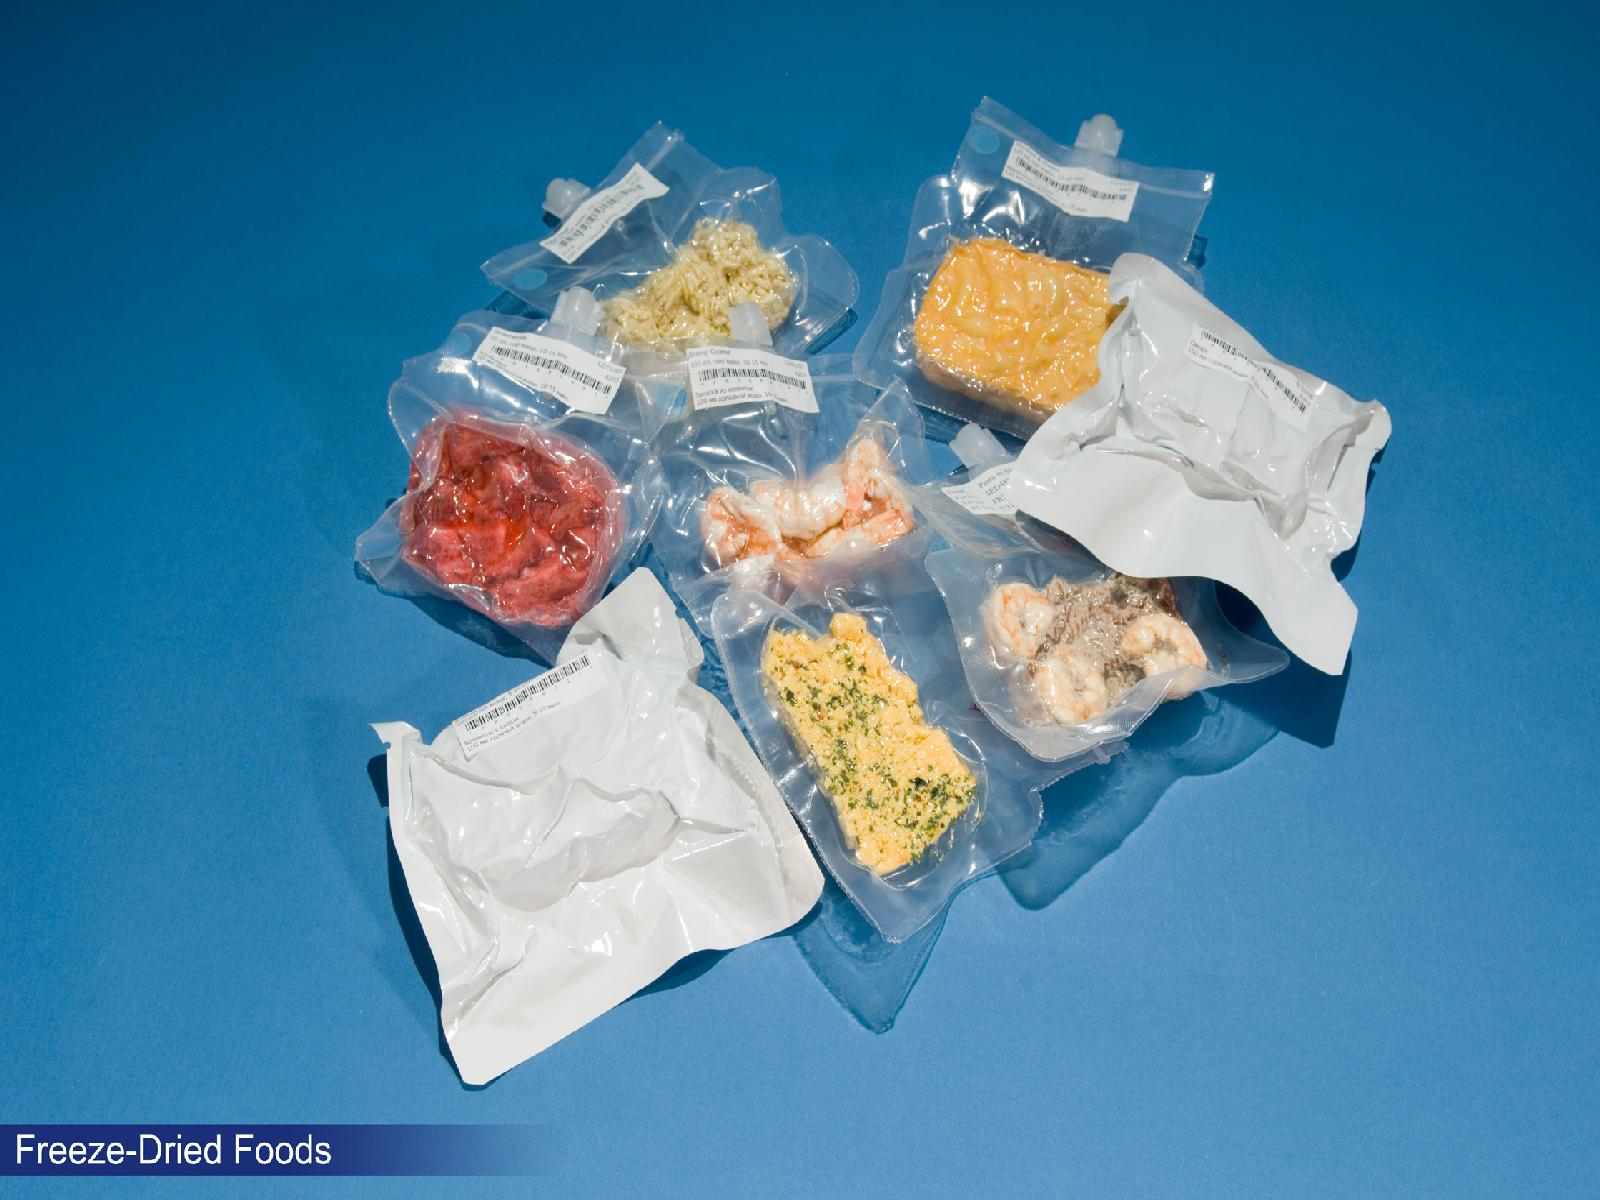 Freeze-Dried Foods